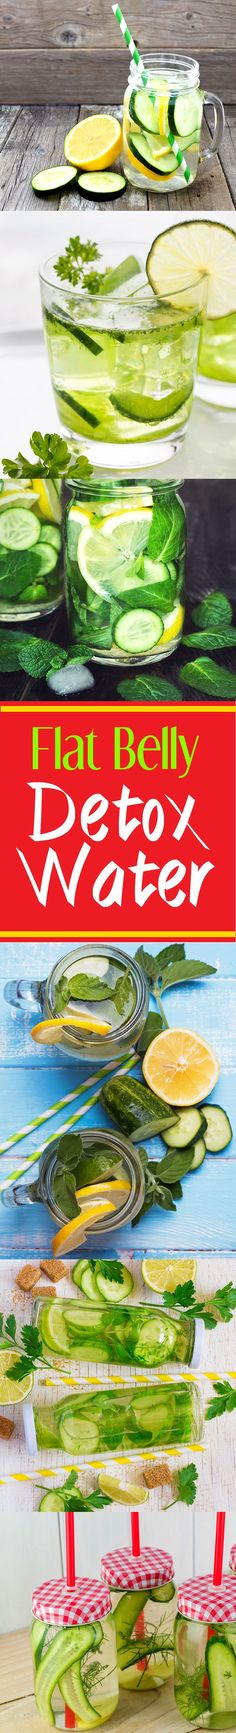 cucumber-lemon flat belly detox water